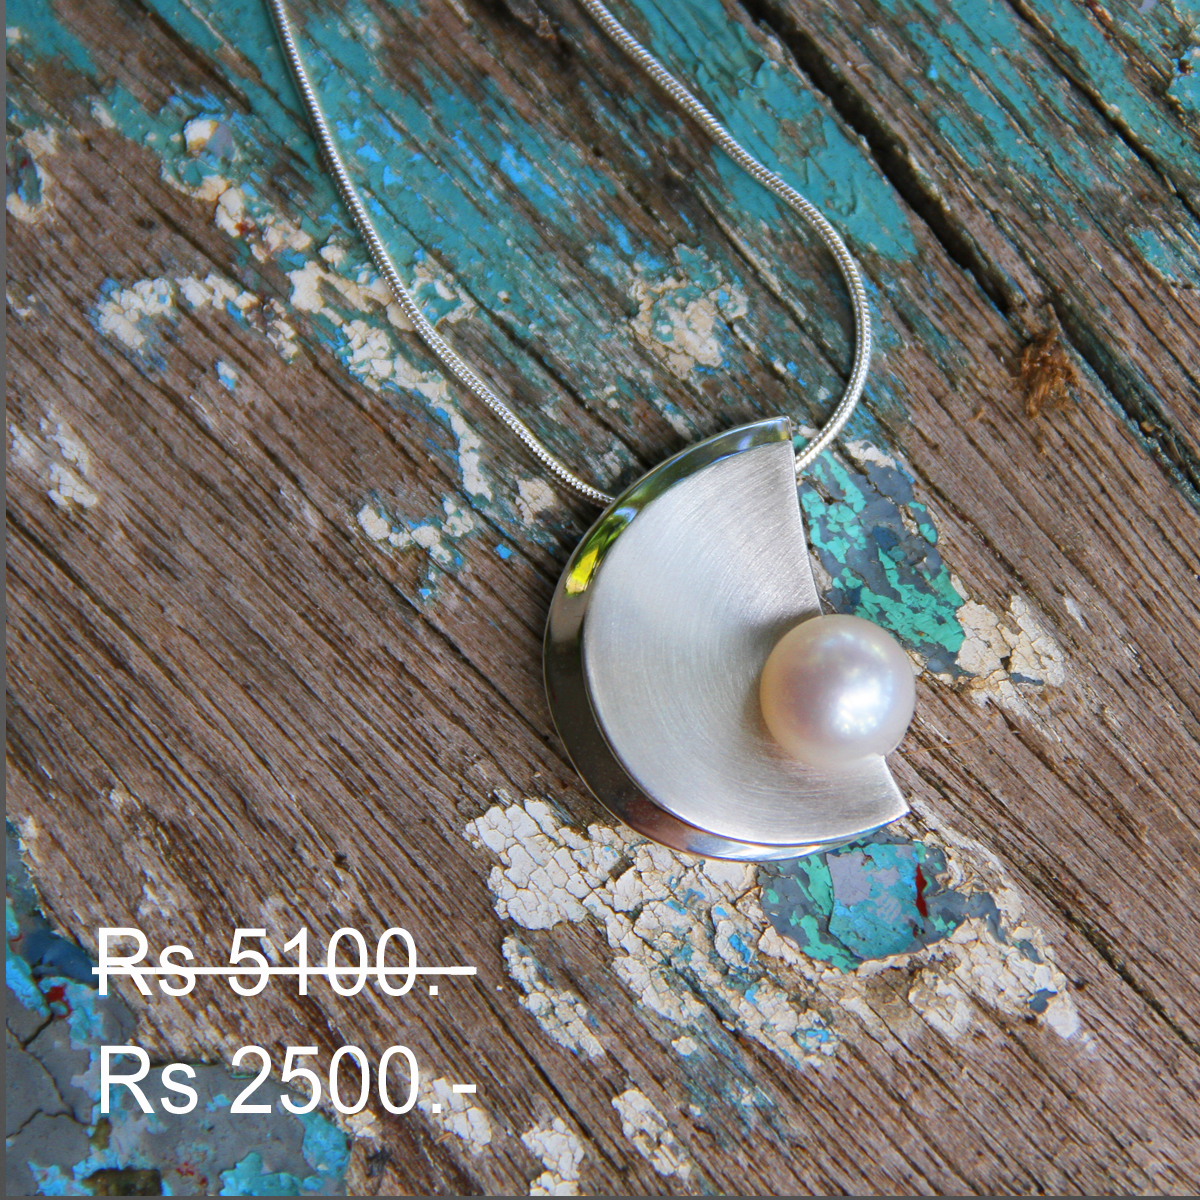 Discounted jewellery